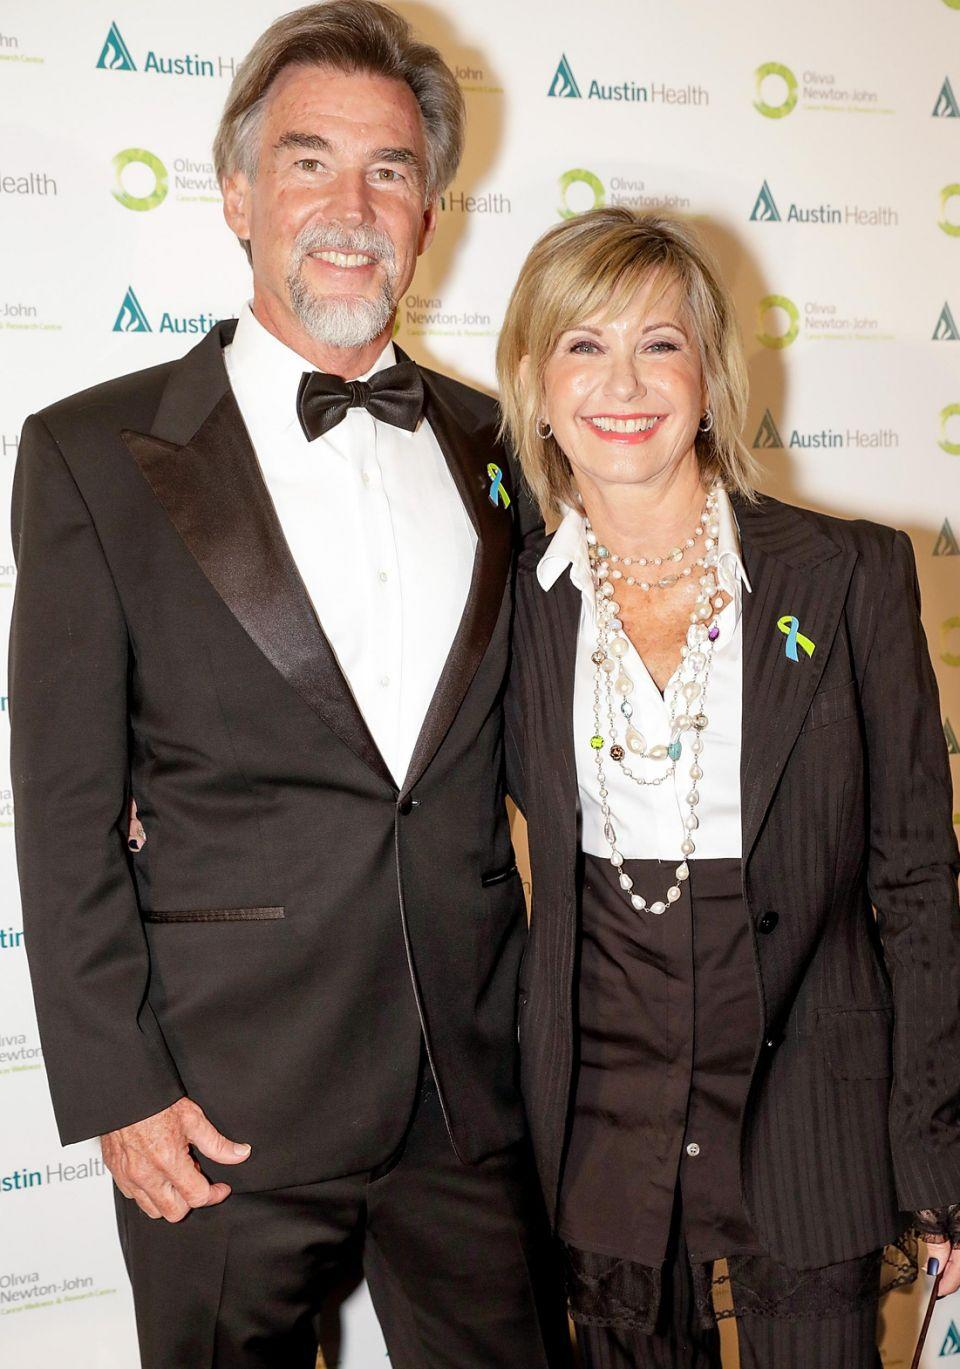 Olivia has revealed that her husband John Easterling has been home-growing her medical marijuana for her. The couple looked to be in good spirits at the ONJ Gala over the weekend. Source: Getty